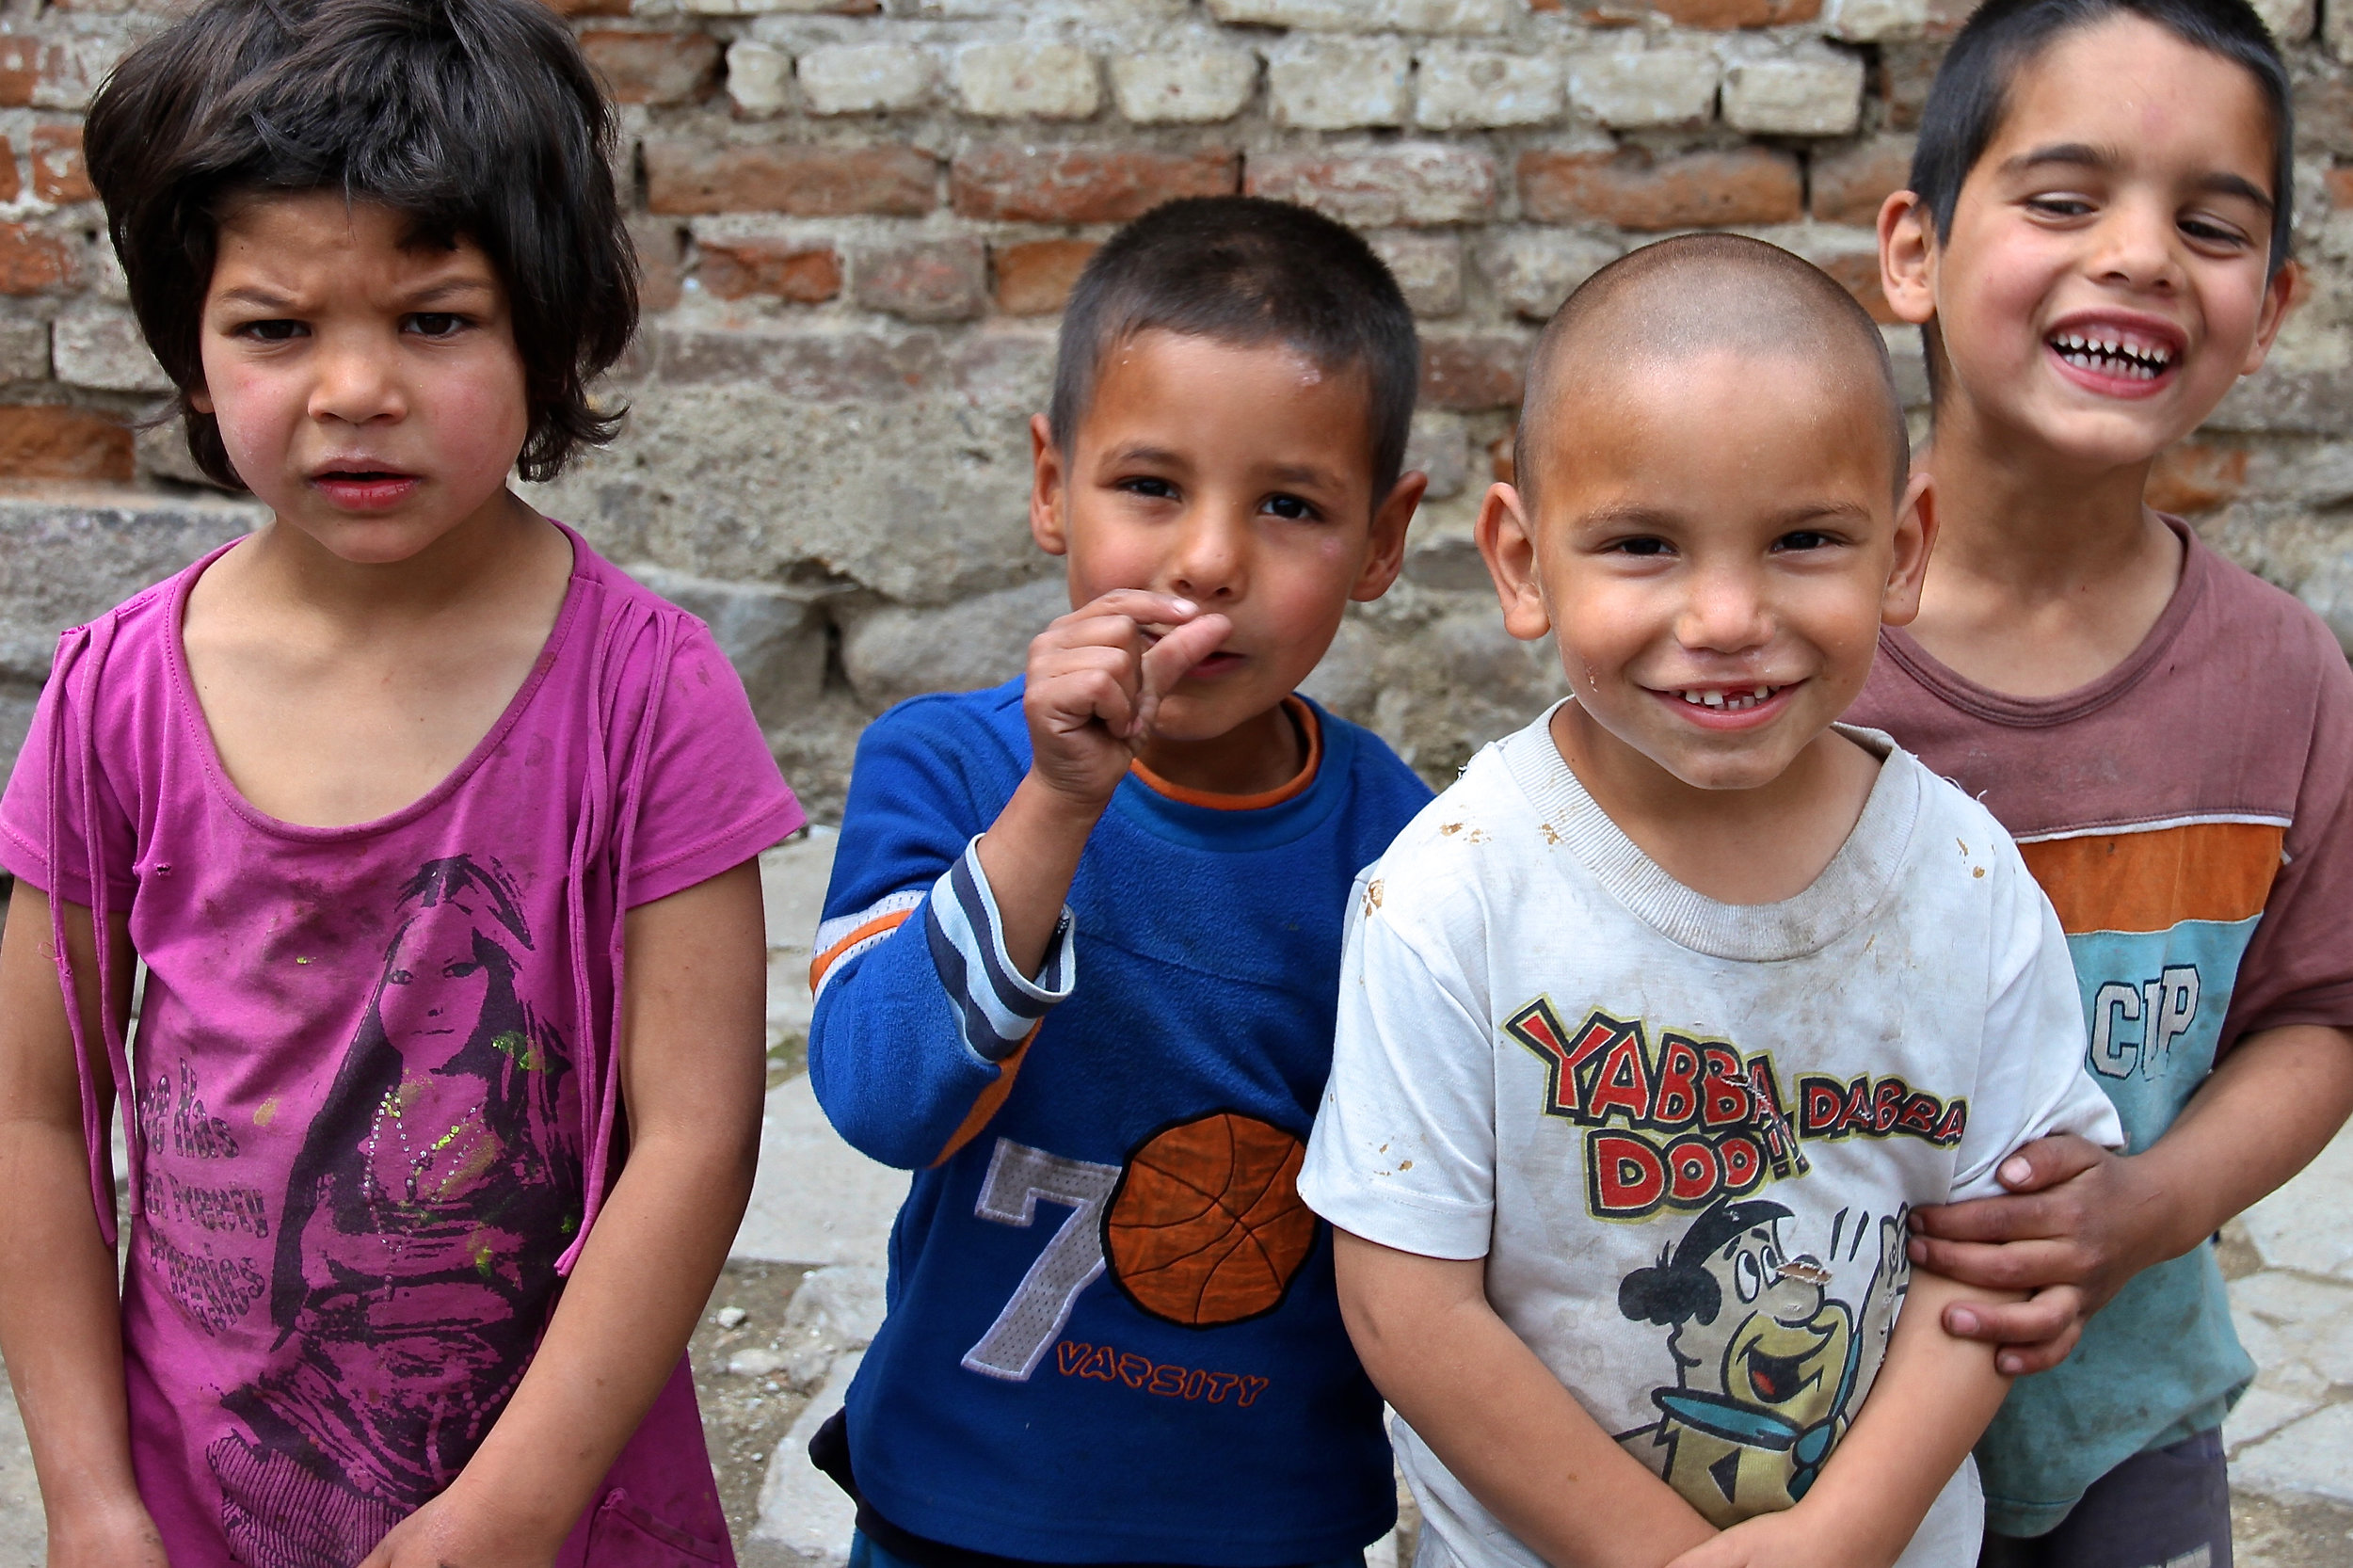 These are some of the Roma children playing outside near our home